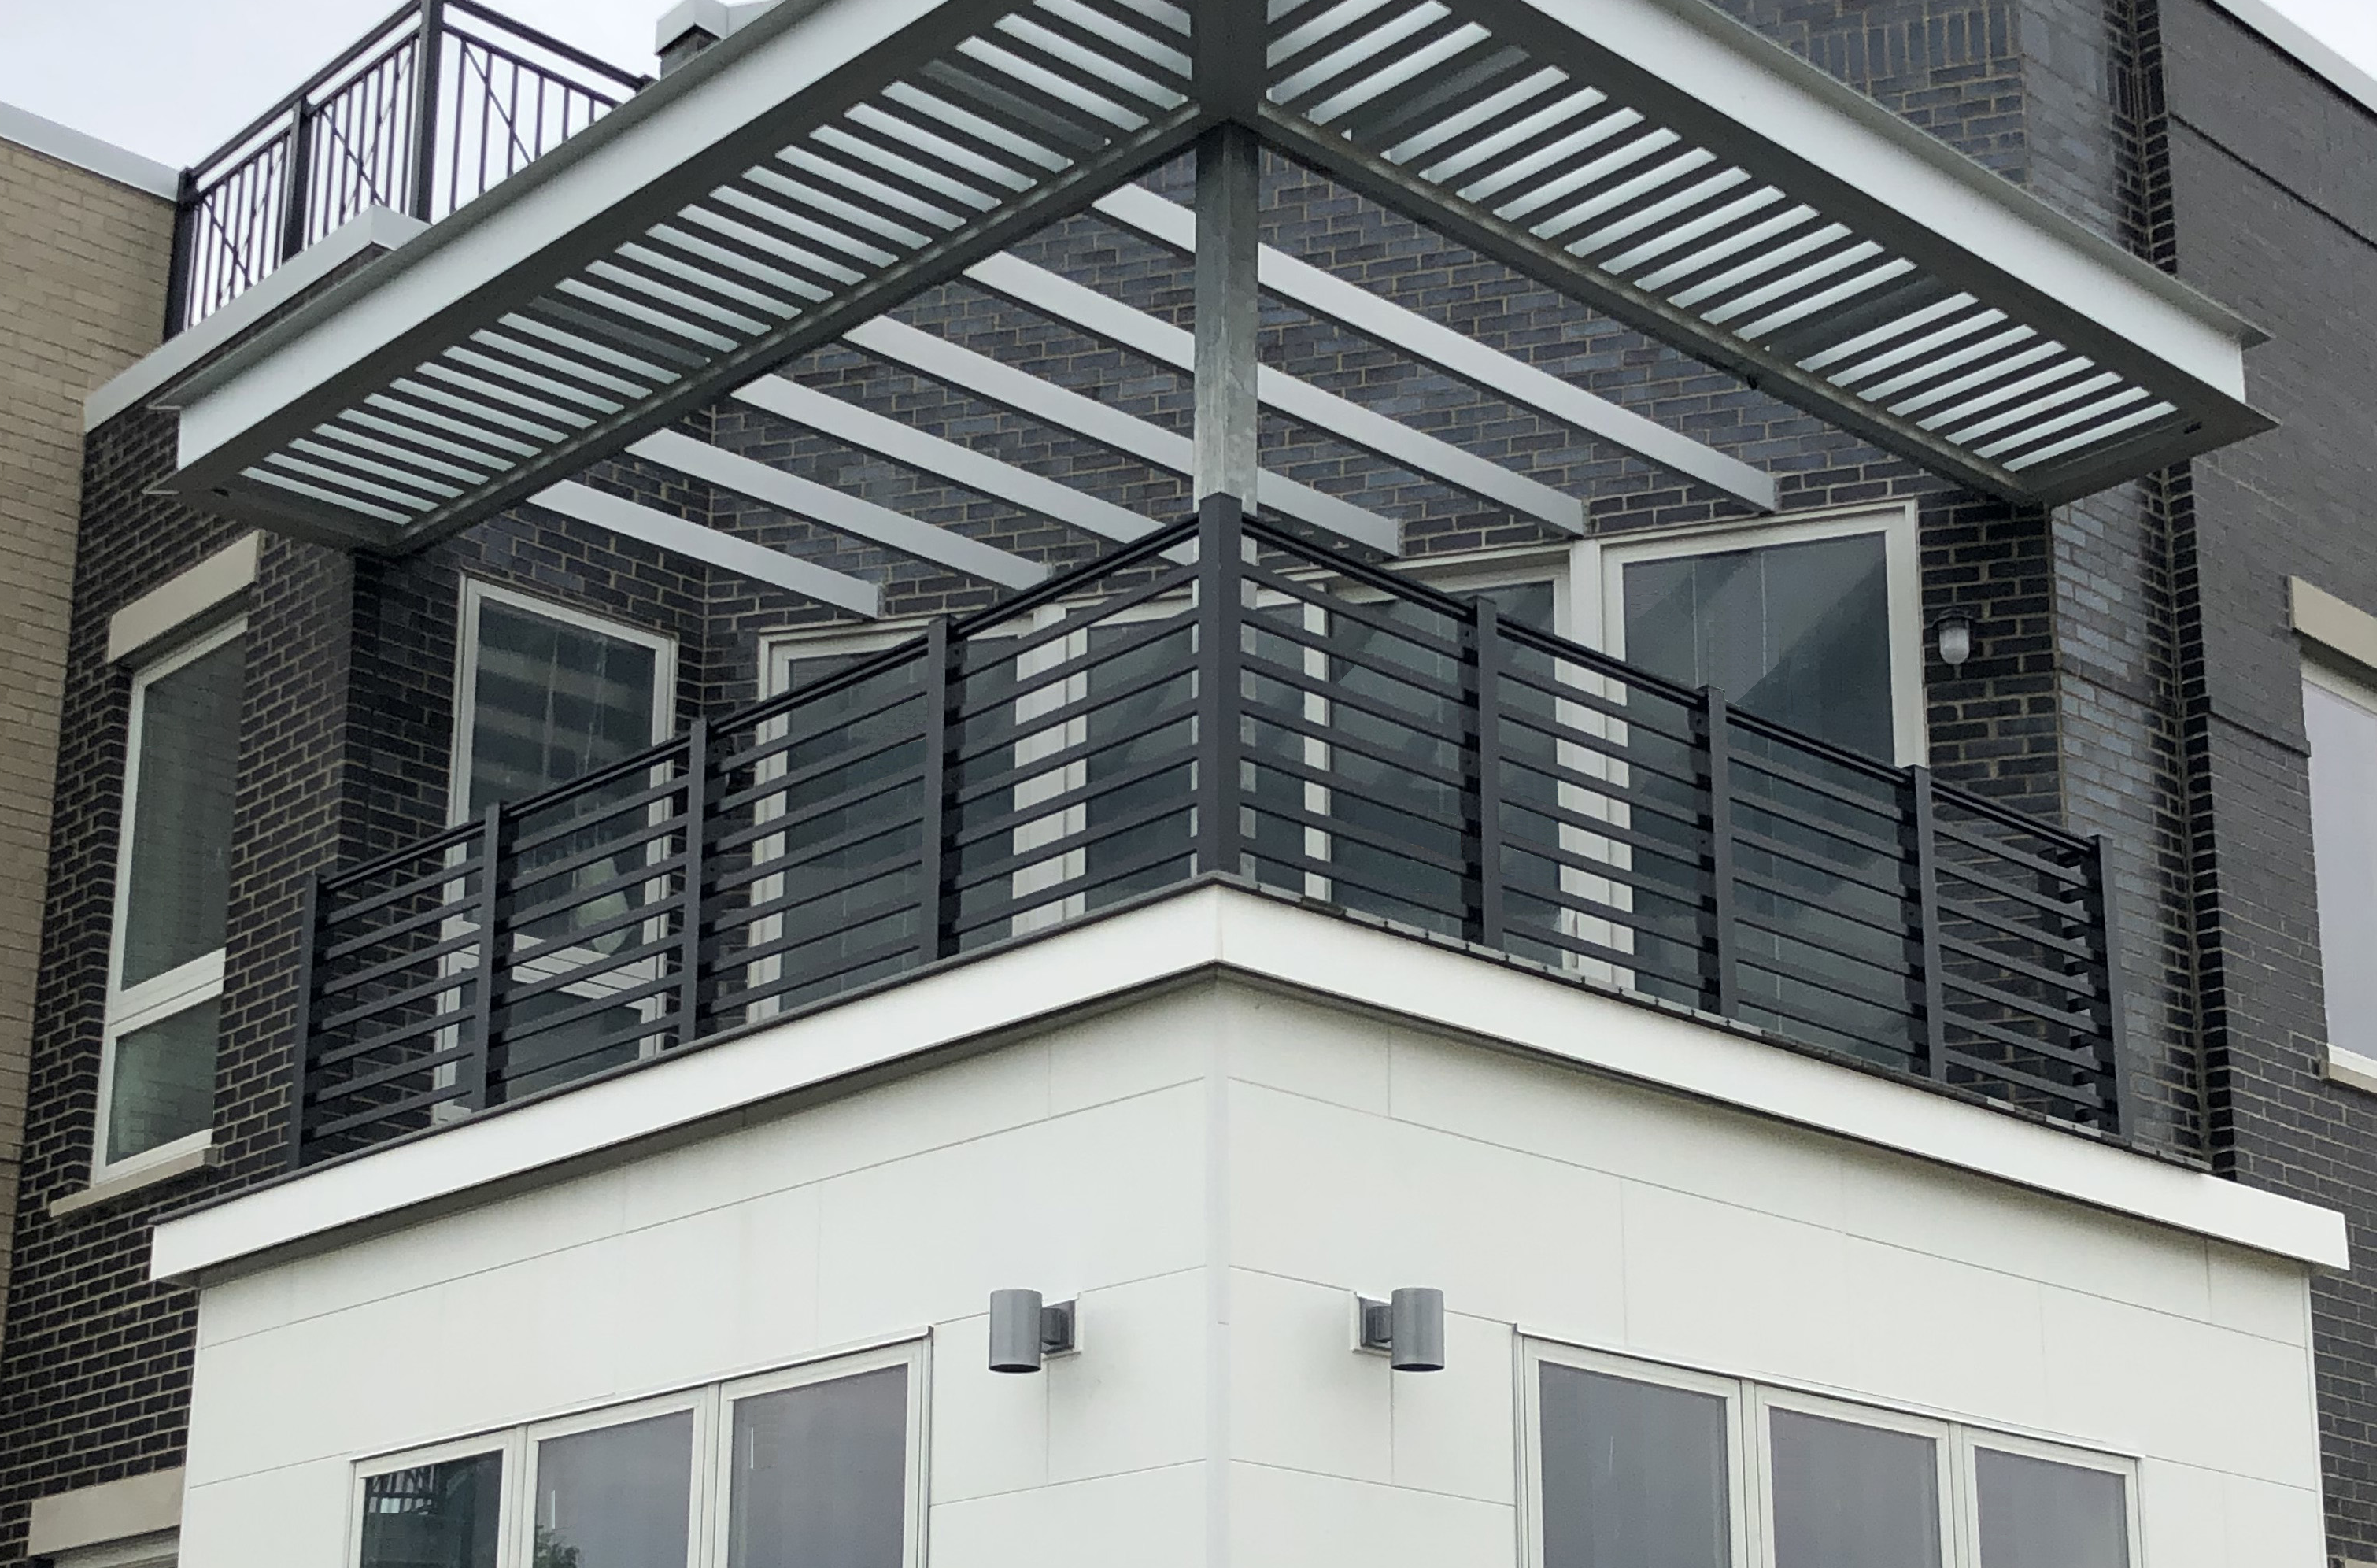 Guardrailing with horizontal lines safeguards an apartment balcony in Dublin, Ohio